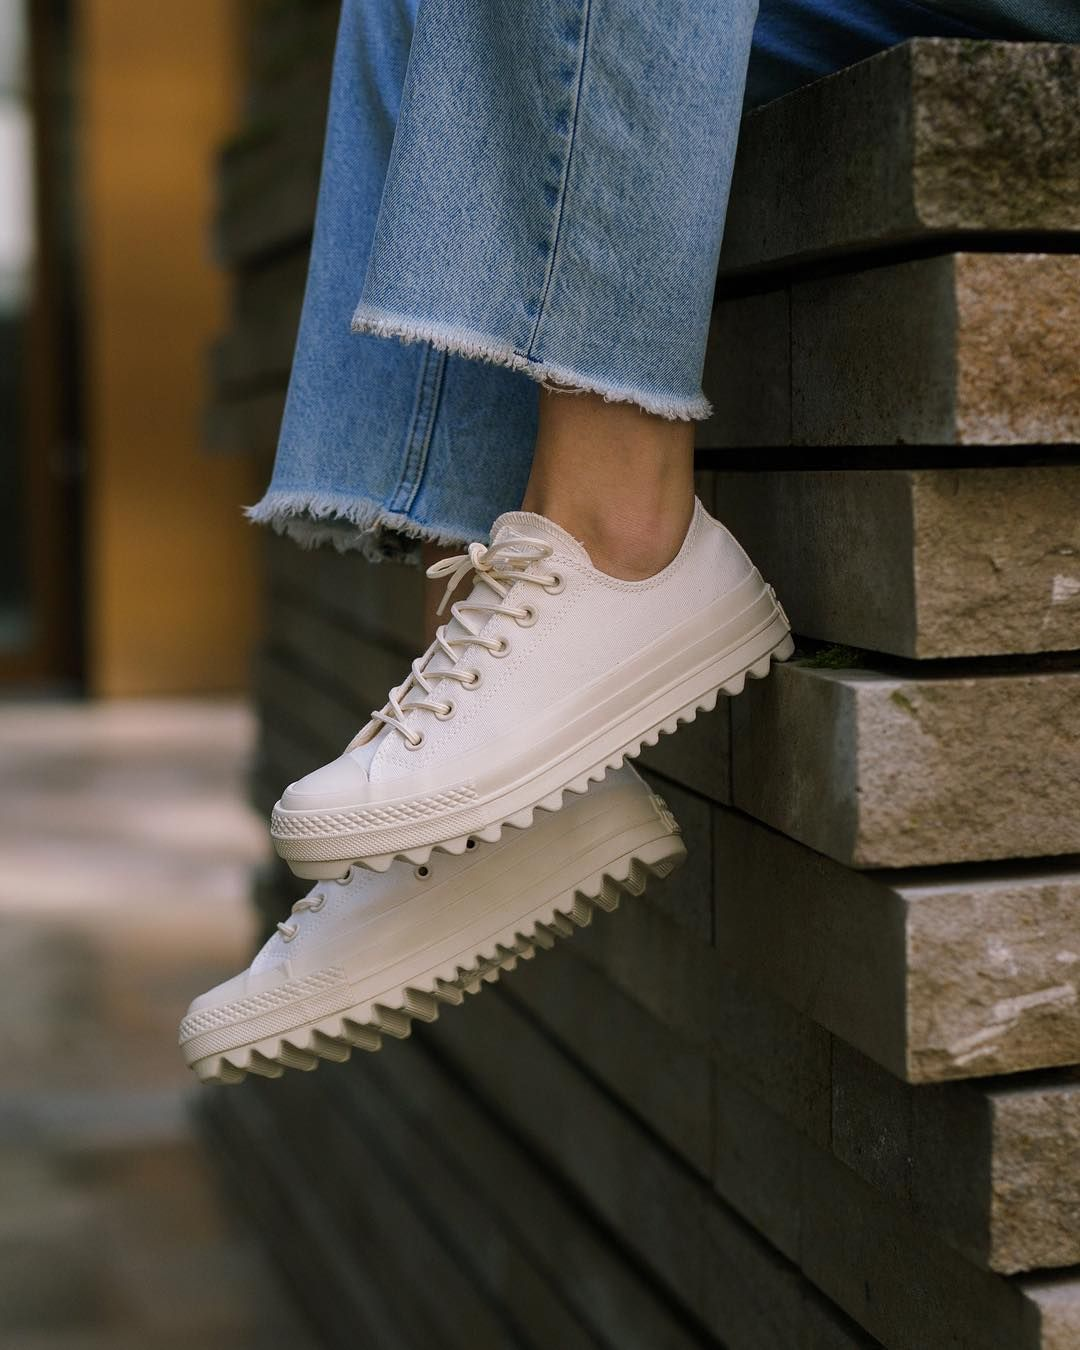 converse lift ripple low